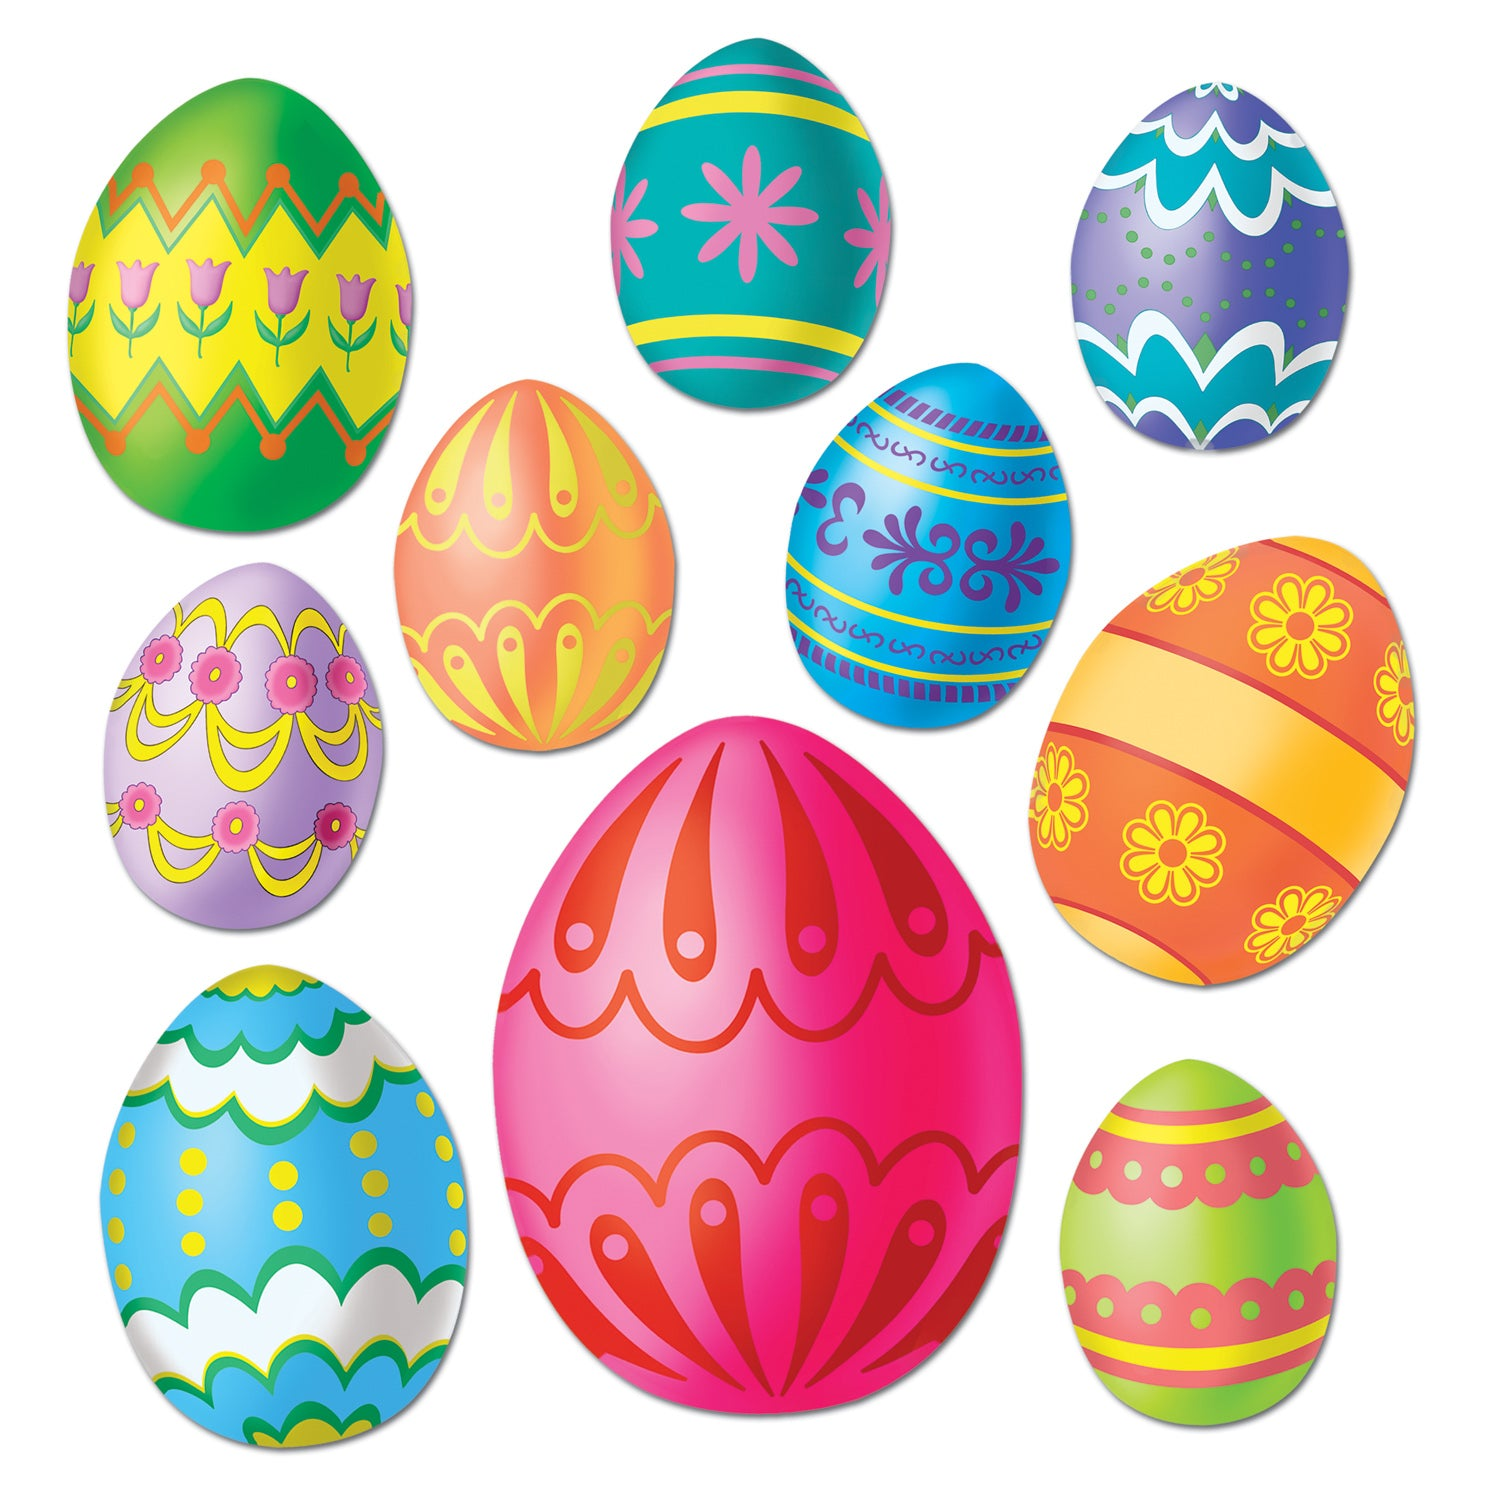 Easter Egg Cutouts (10/Pkg) by Beistle - Easter Theme Decorations